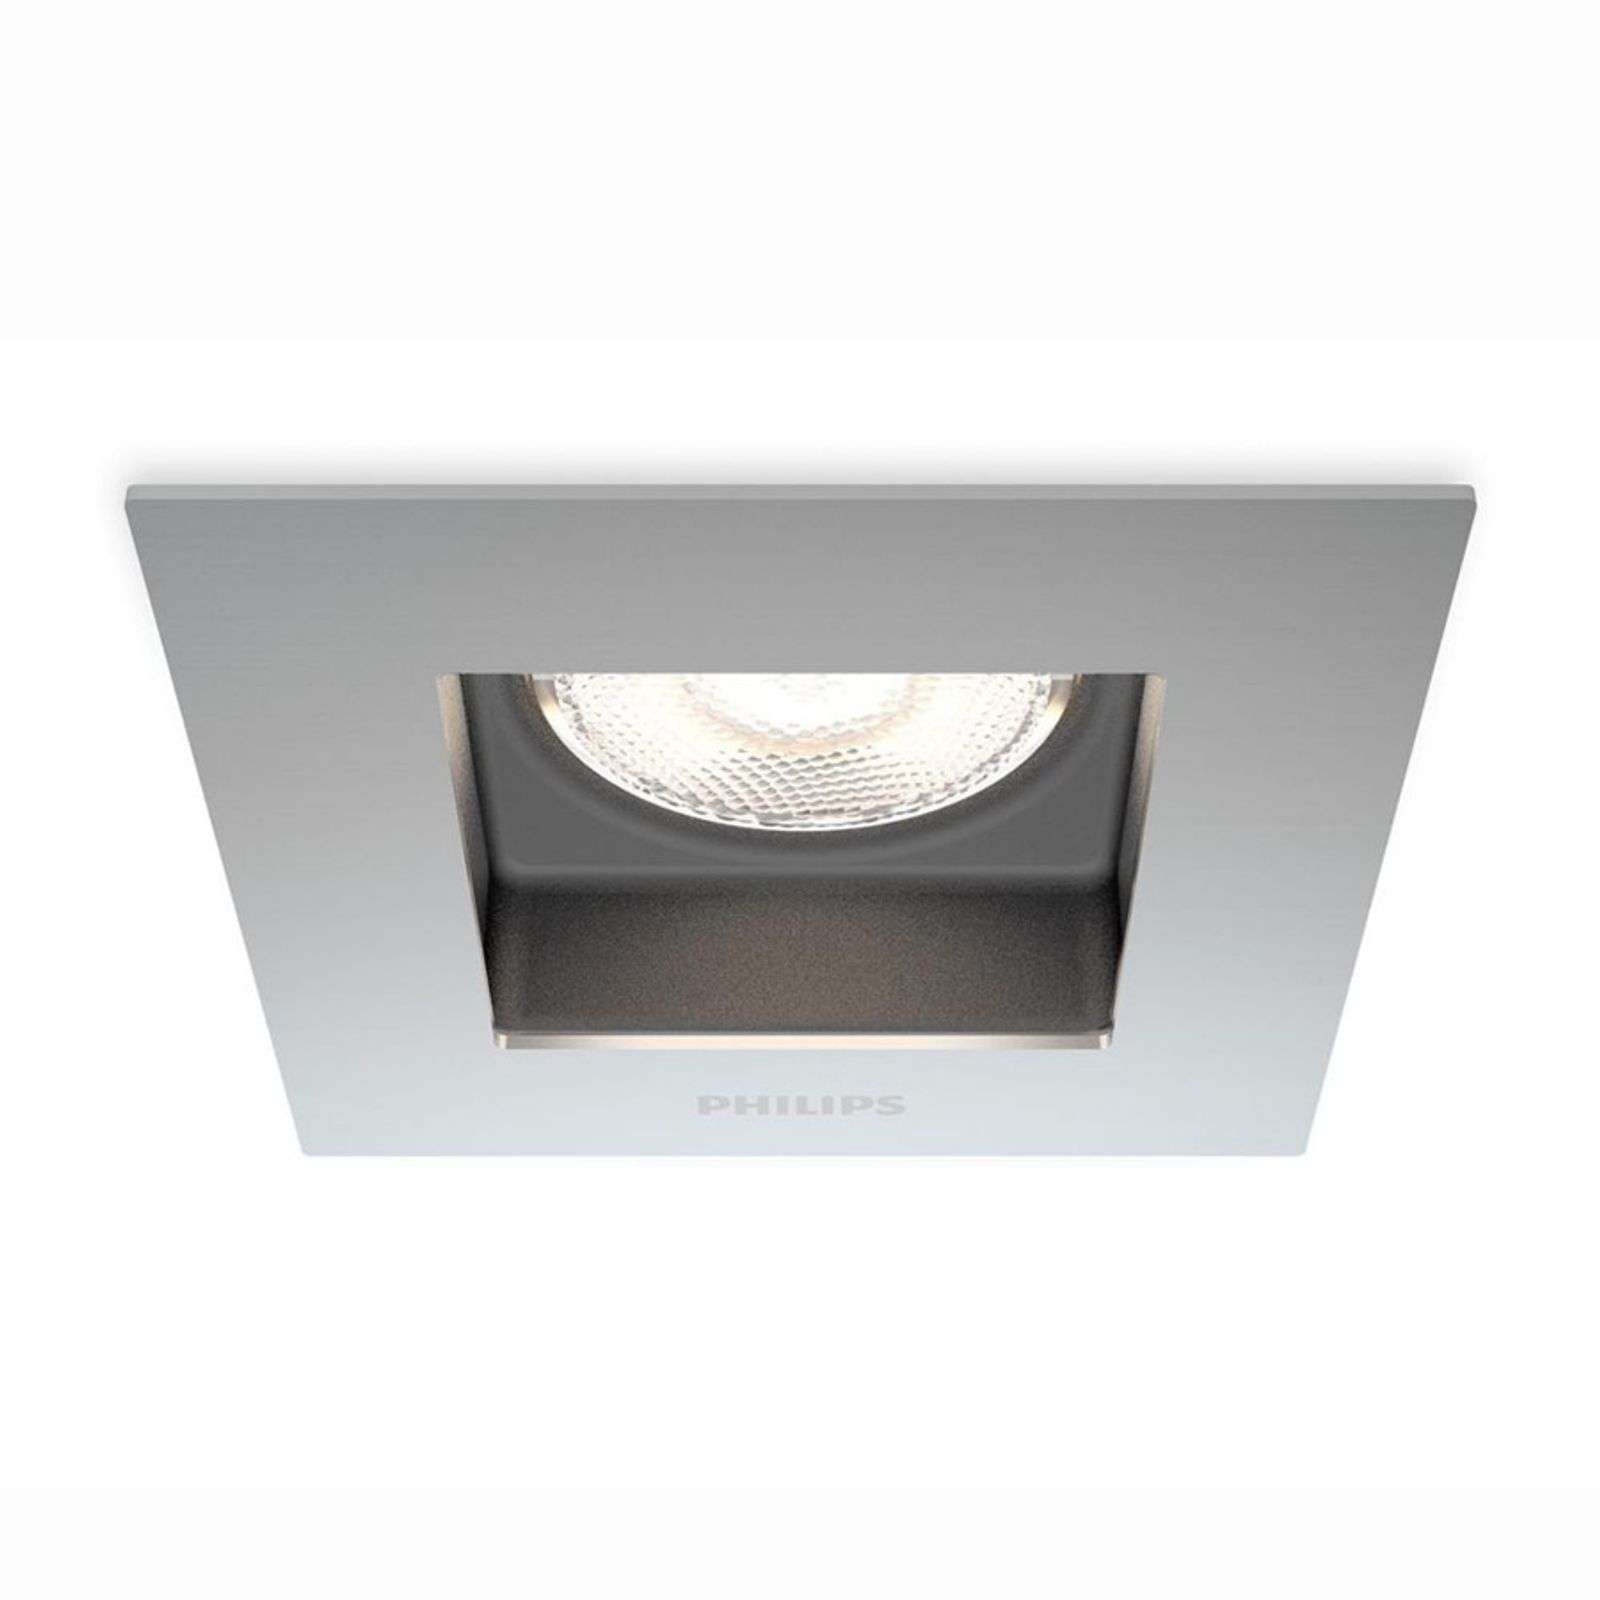 Porrima - LED recessed light with an angular shape